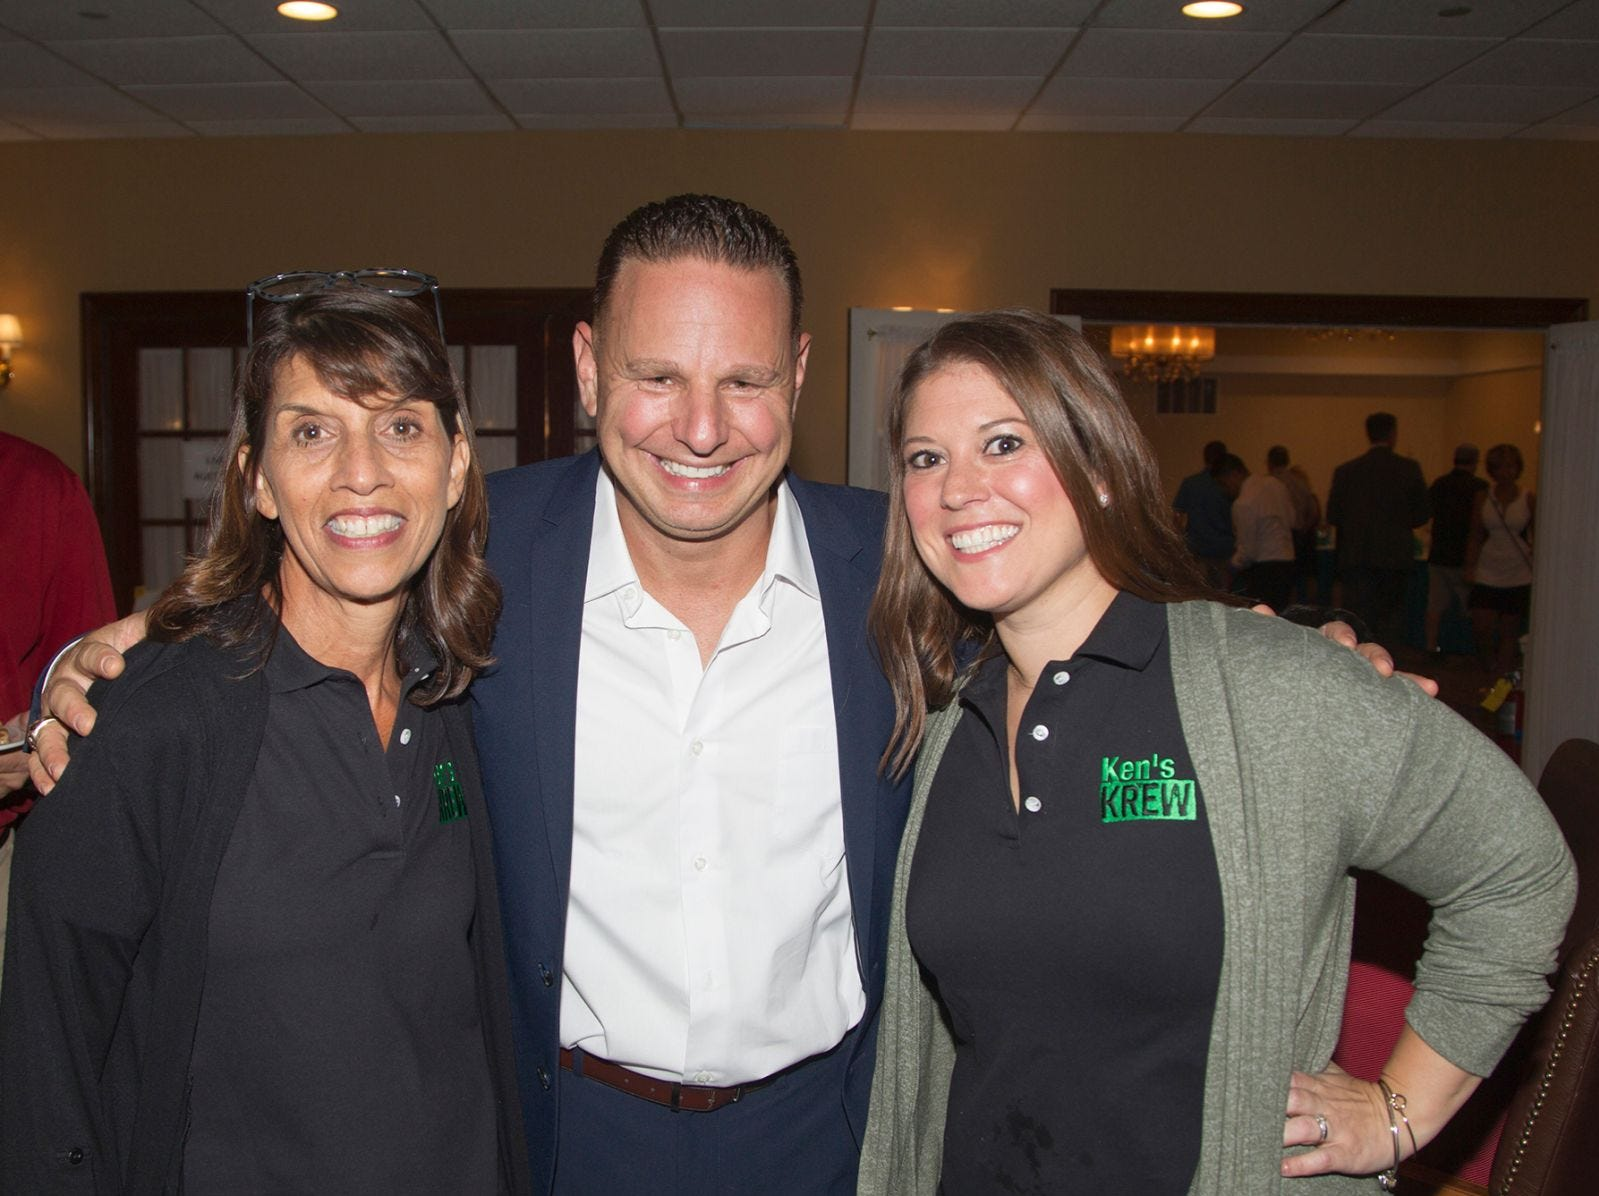 Diane Macaluso, Mark Esposito, Jailynn Worster. Ken's Krew Golf Outing at White Beeches Country Club in Haworth. Ken's Krew provides vocational training and job placement services for young adults with intellectual and developmental disabilities. 10/09/2018